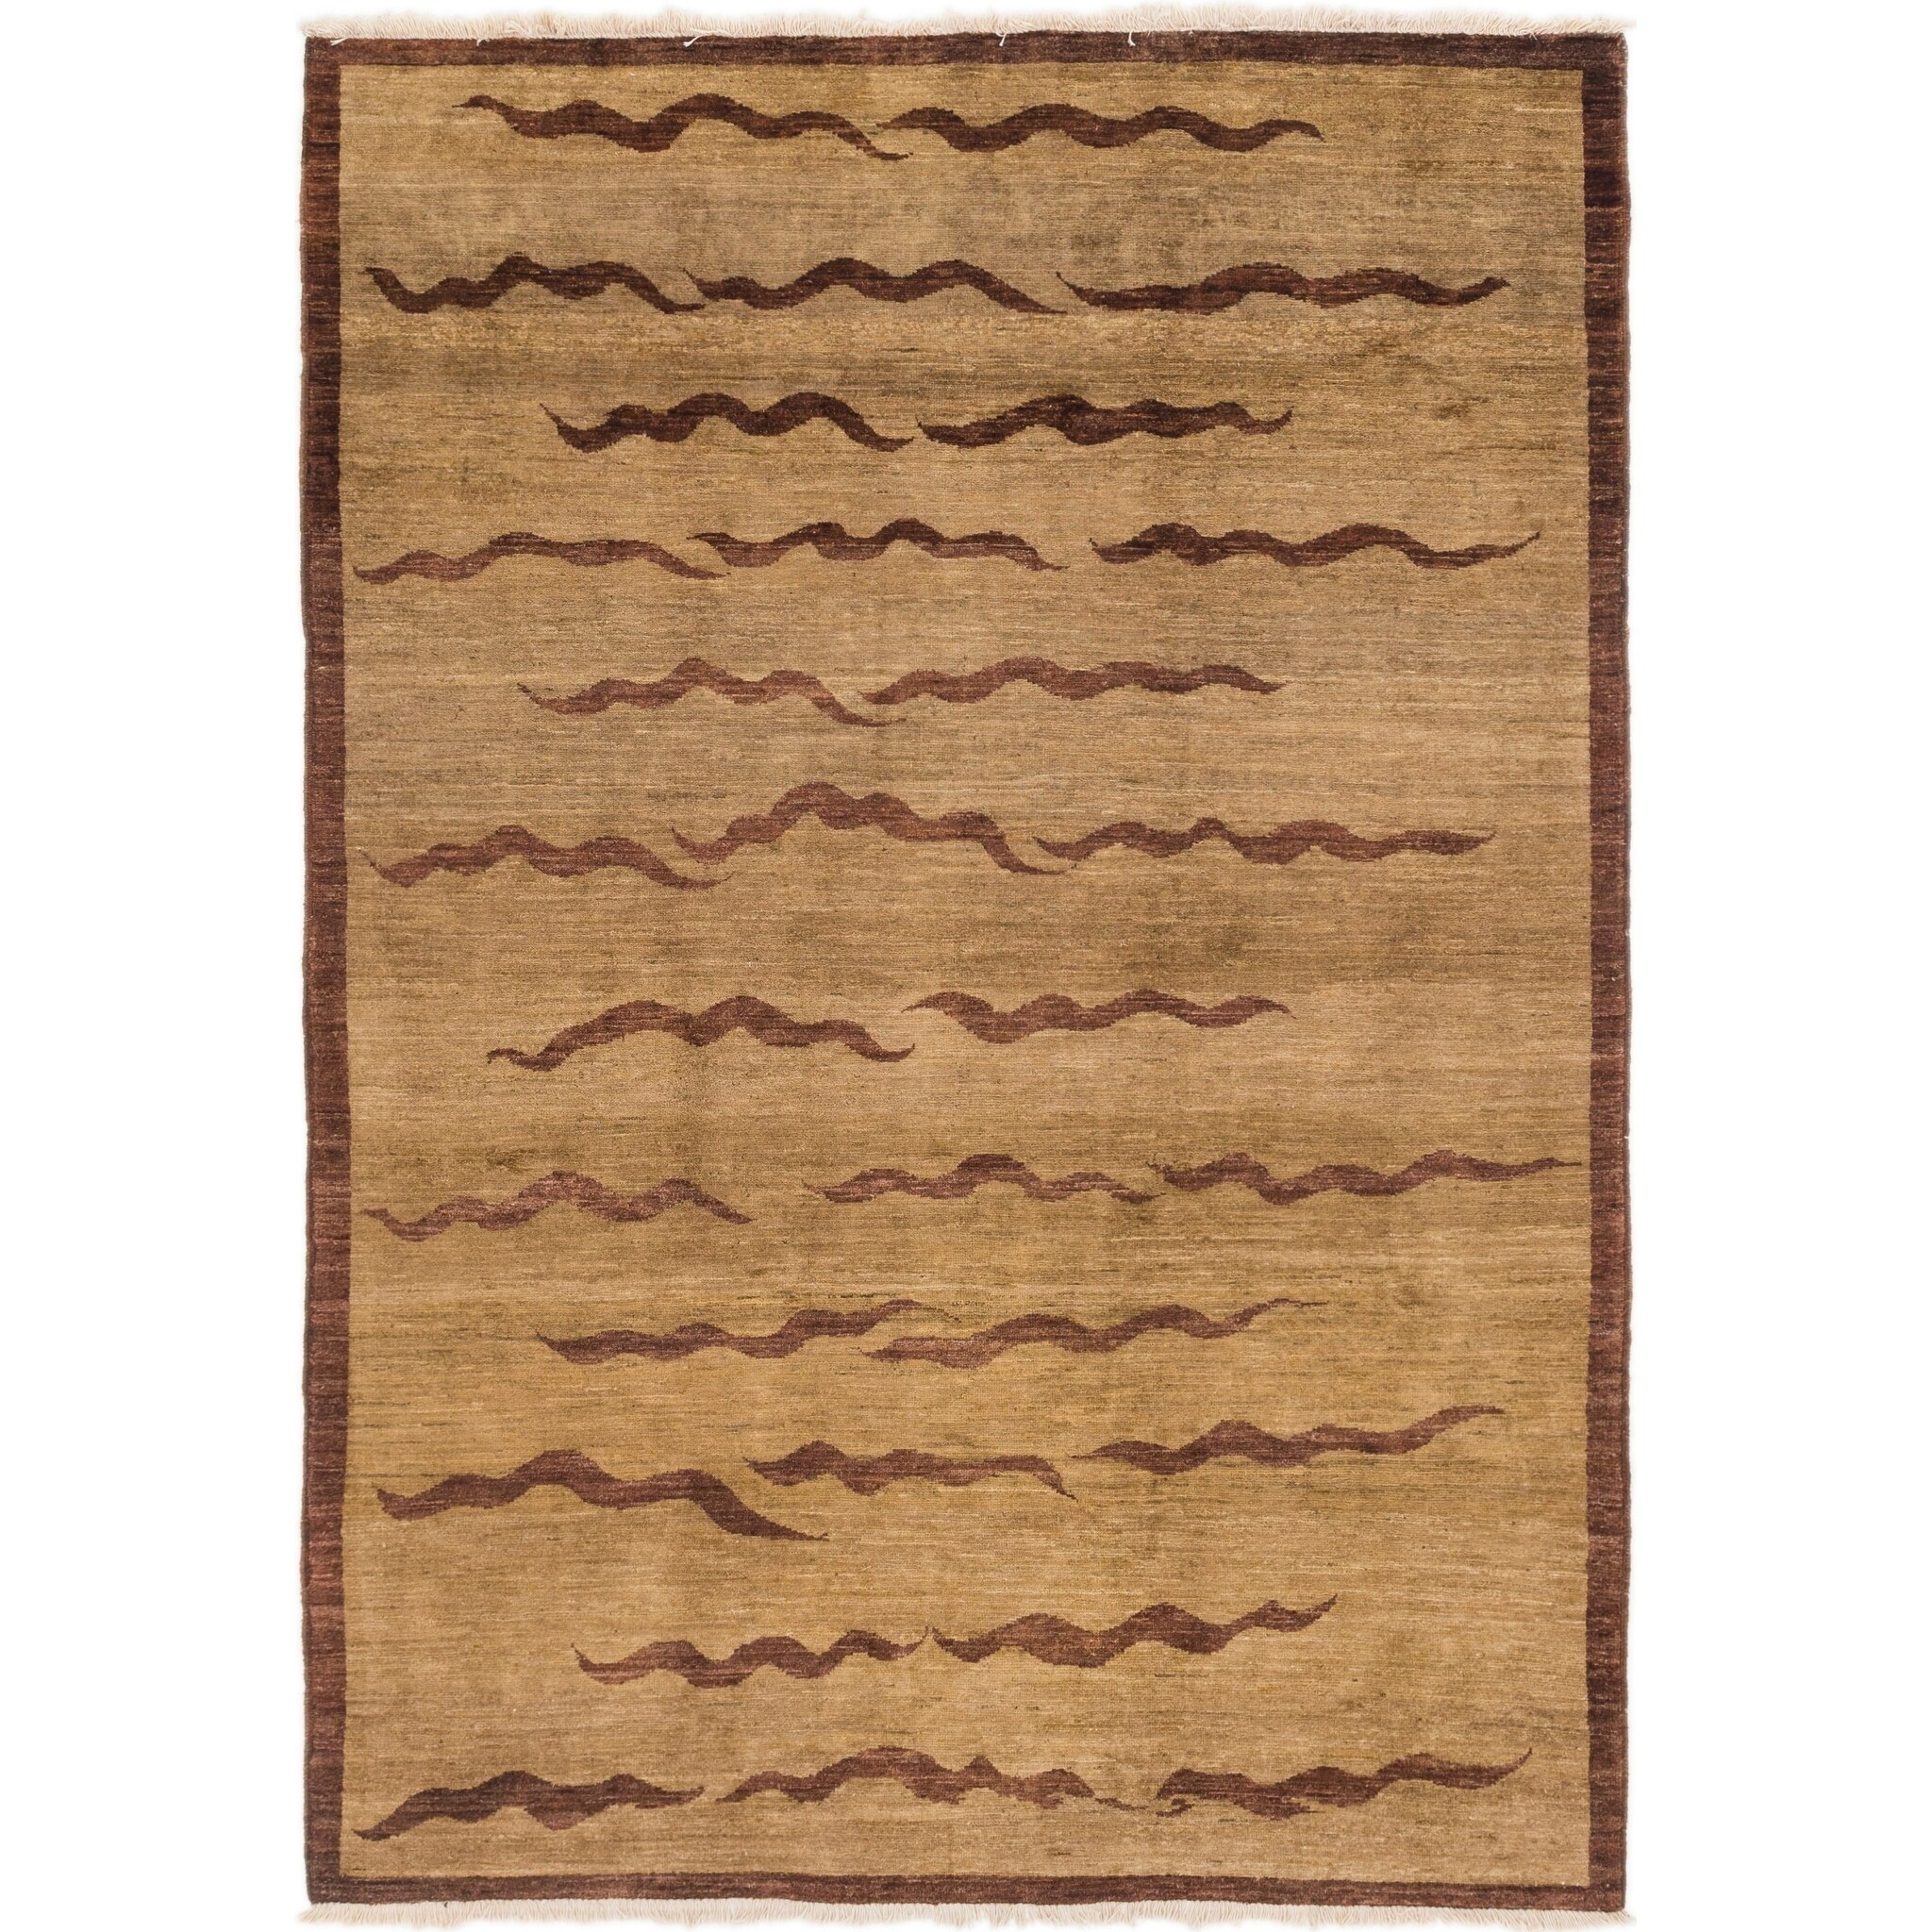 Hand Knotted Kashkuli Gabbeh Wool Area Rug - 6 x 8 8 (Light brown - 6 x 8 8)